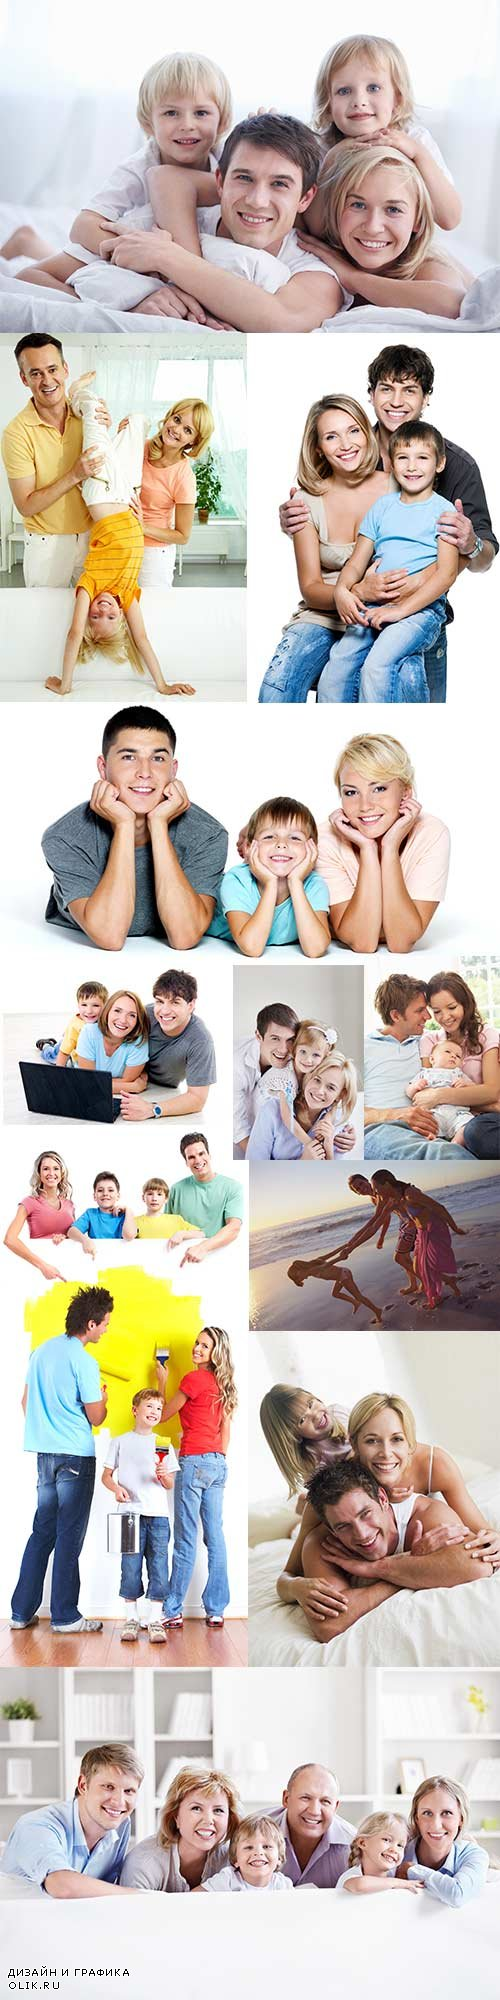 Young happy family of raster graphics - 2